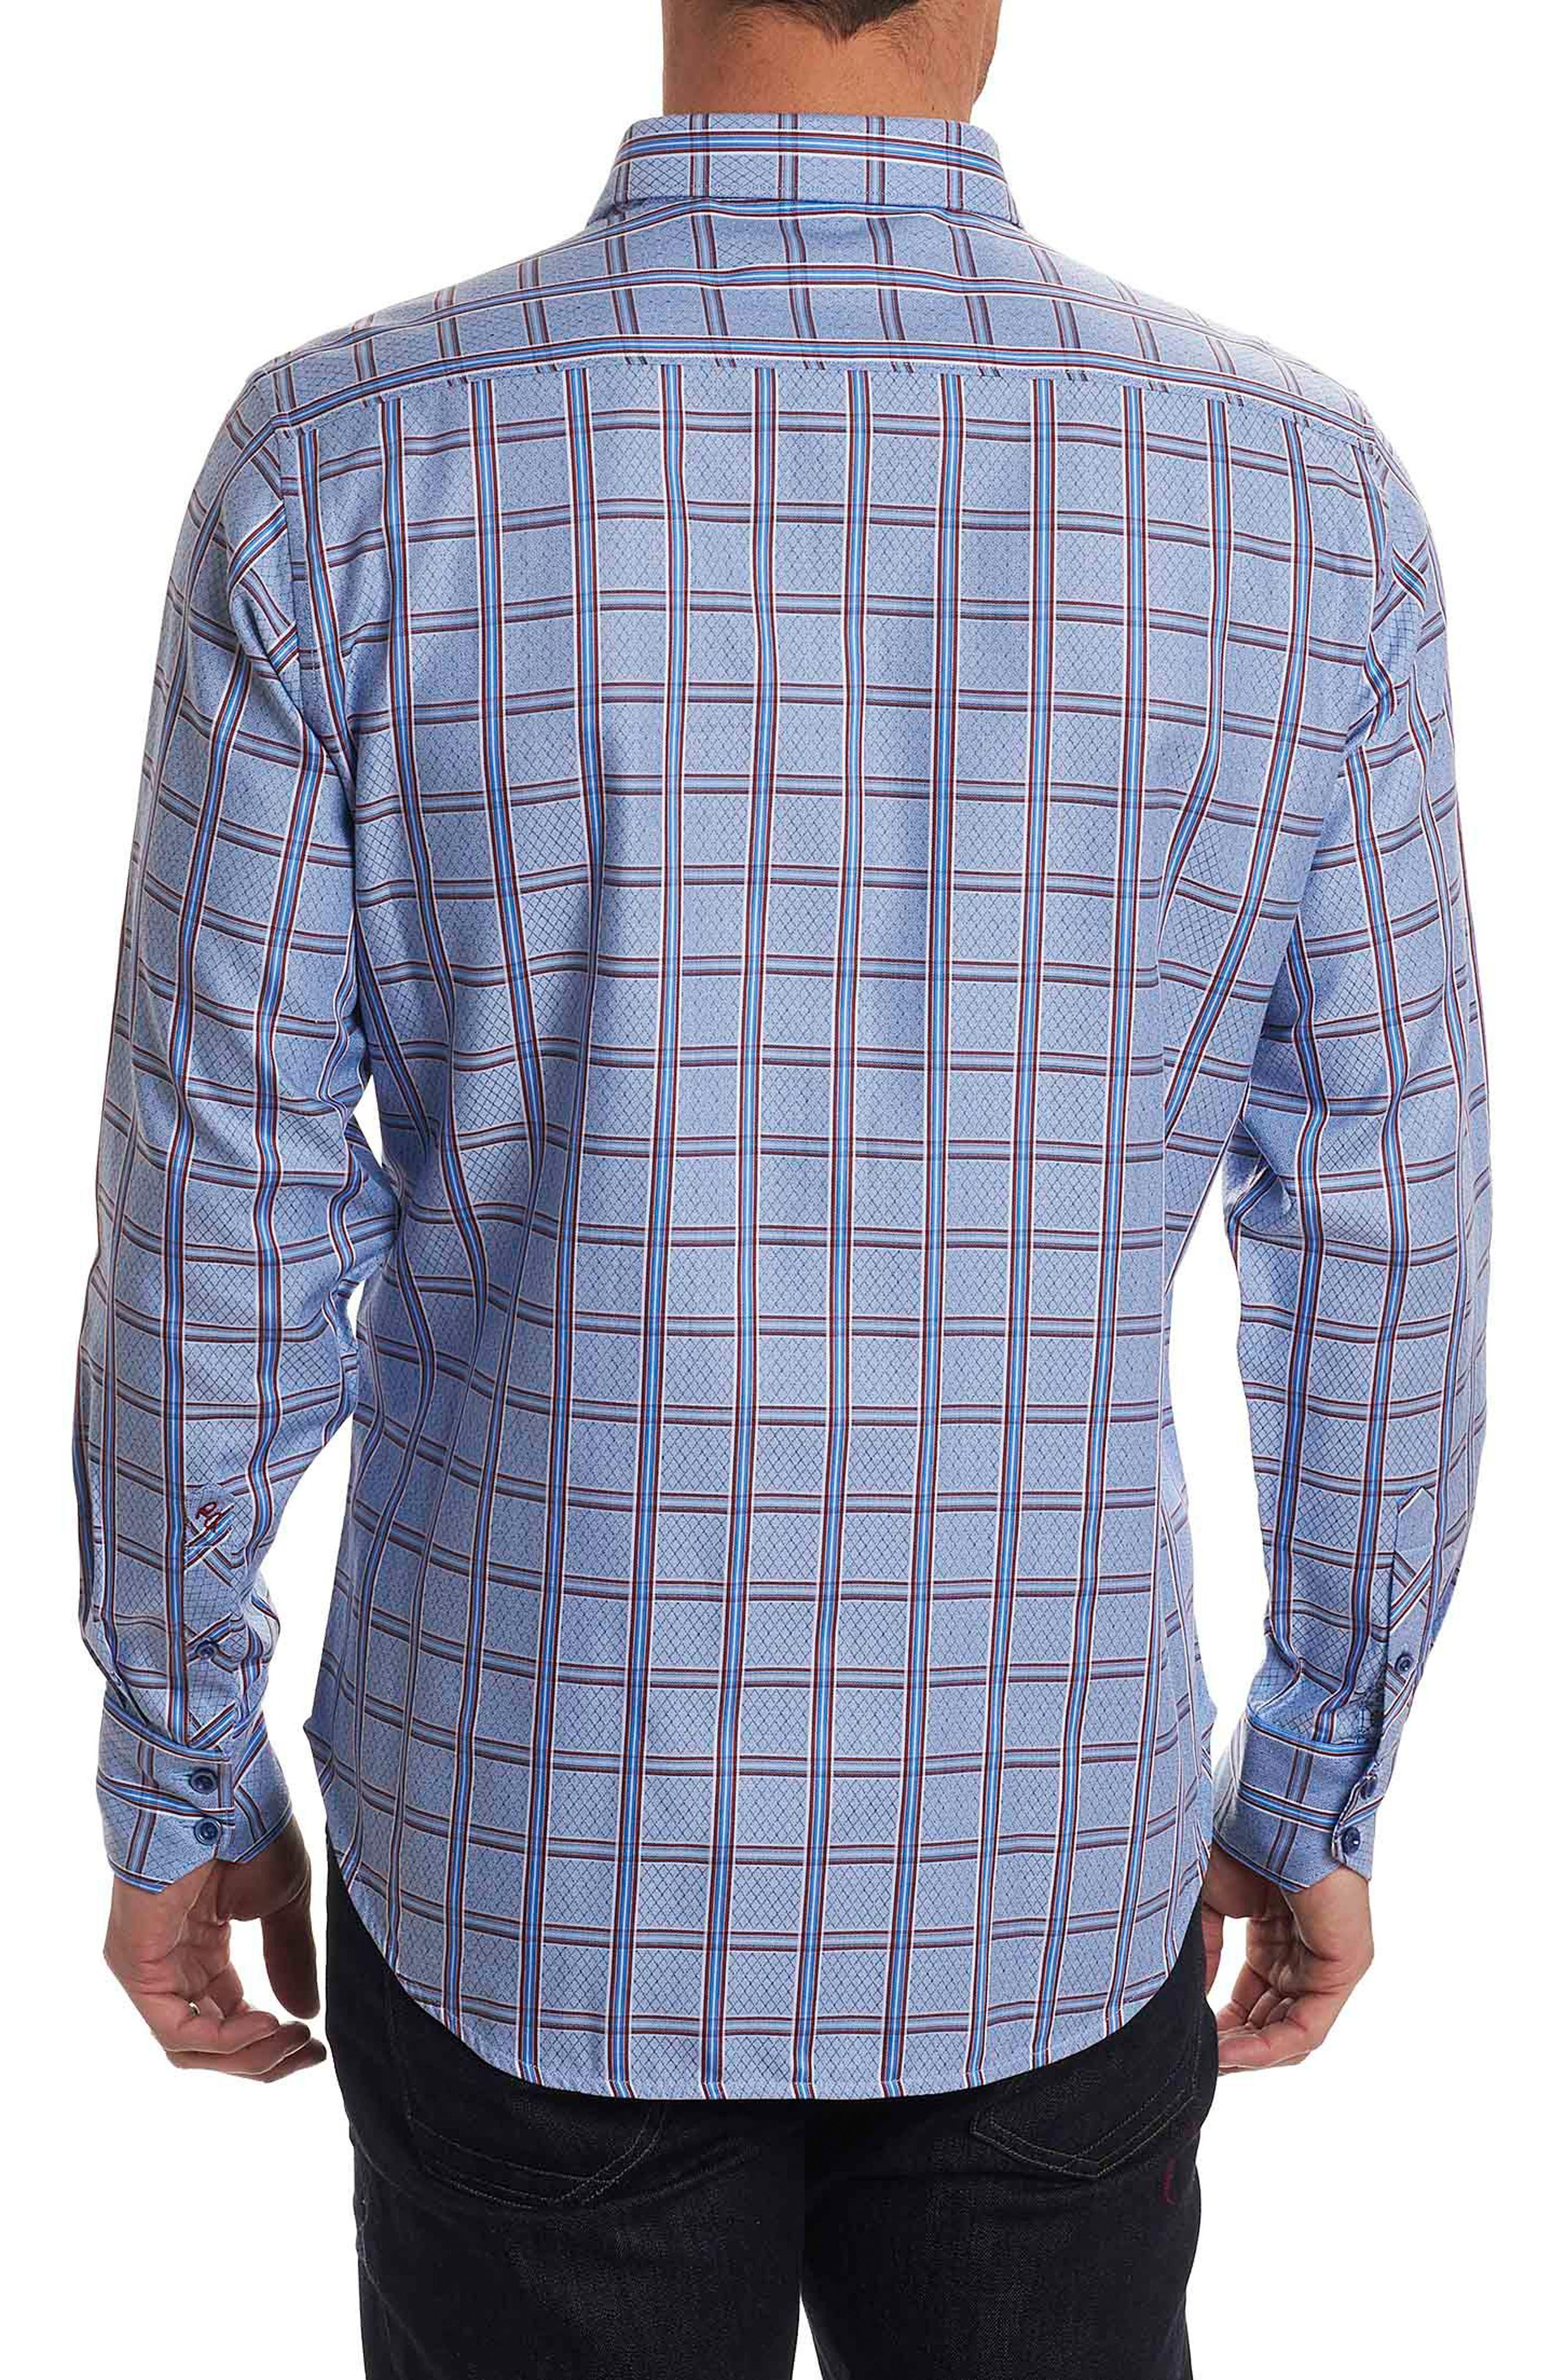 Jerold Print Sport Shirt,                             Alternate thumbnail 2, color,                             400